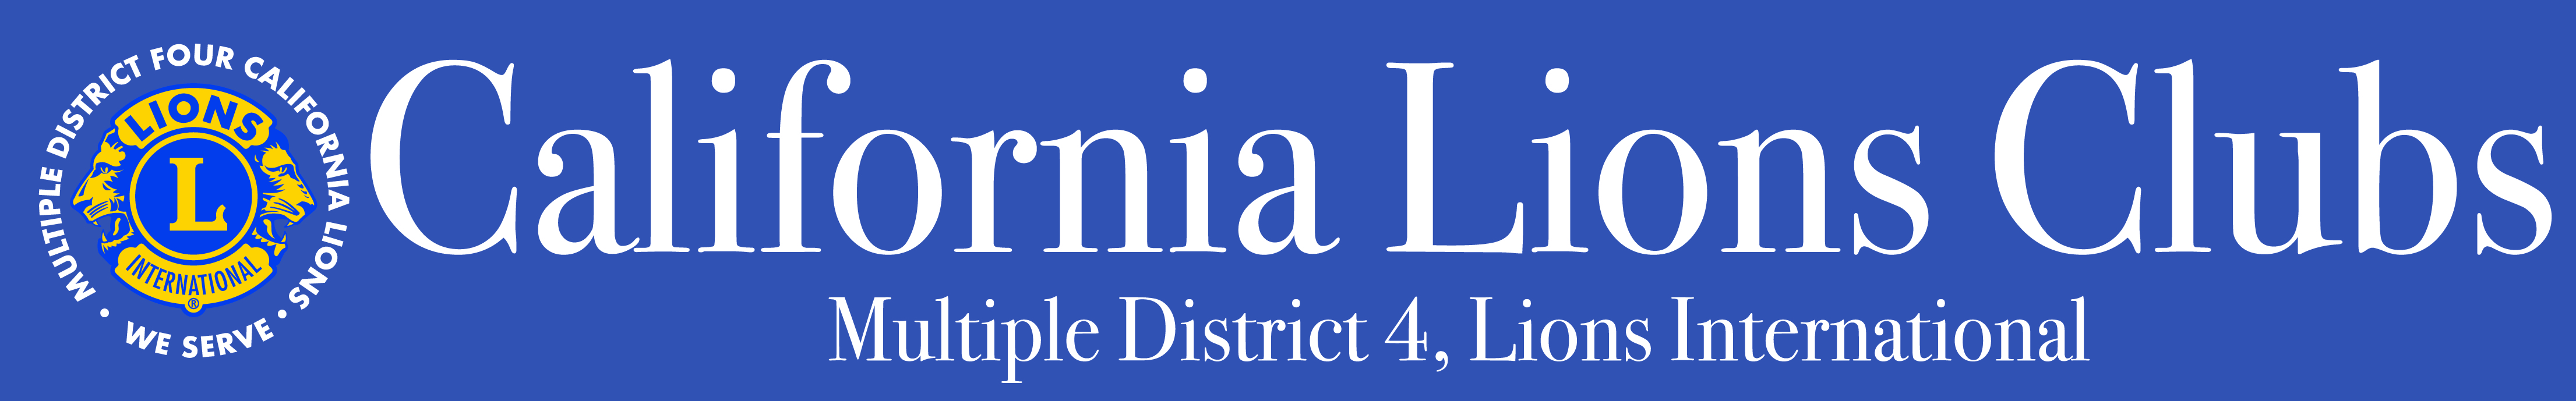 Events | Multiple District 4 California Lions